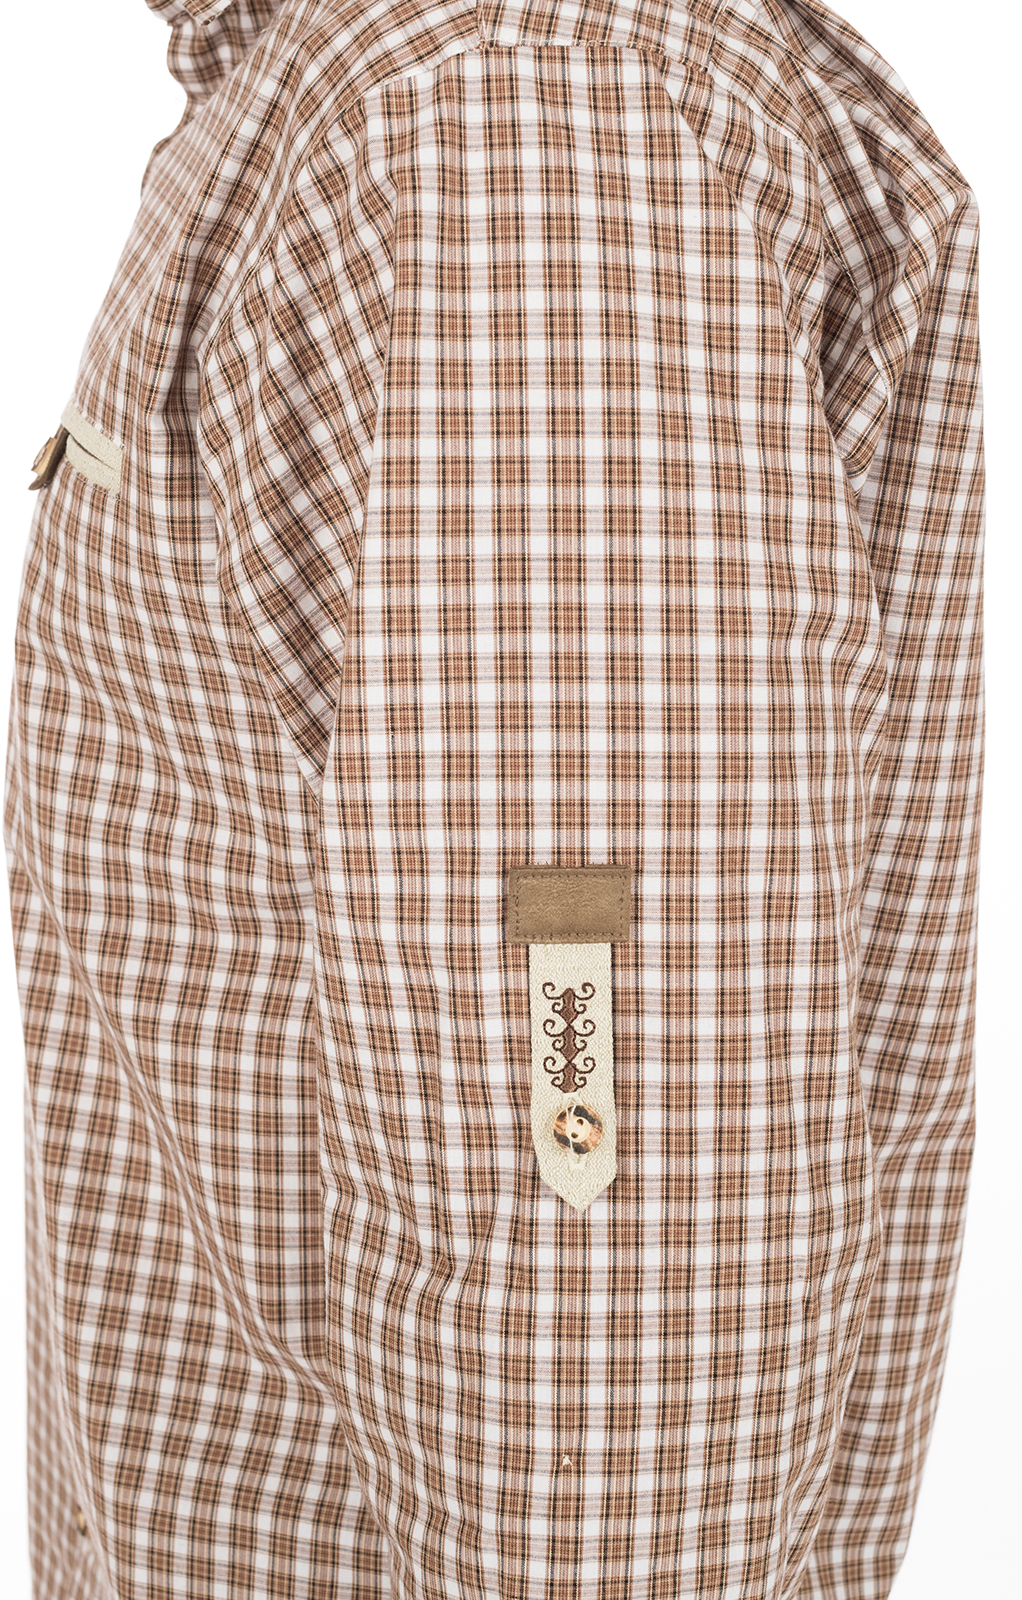 weitere Bilder von German traditional shirt brown